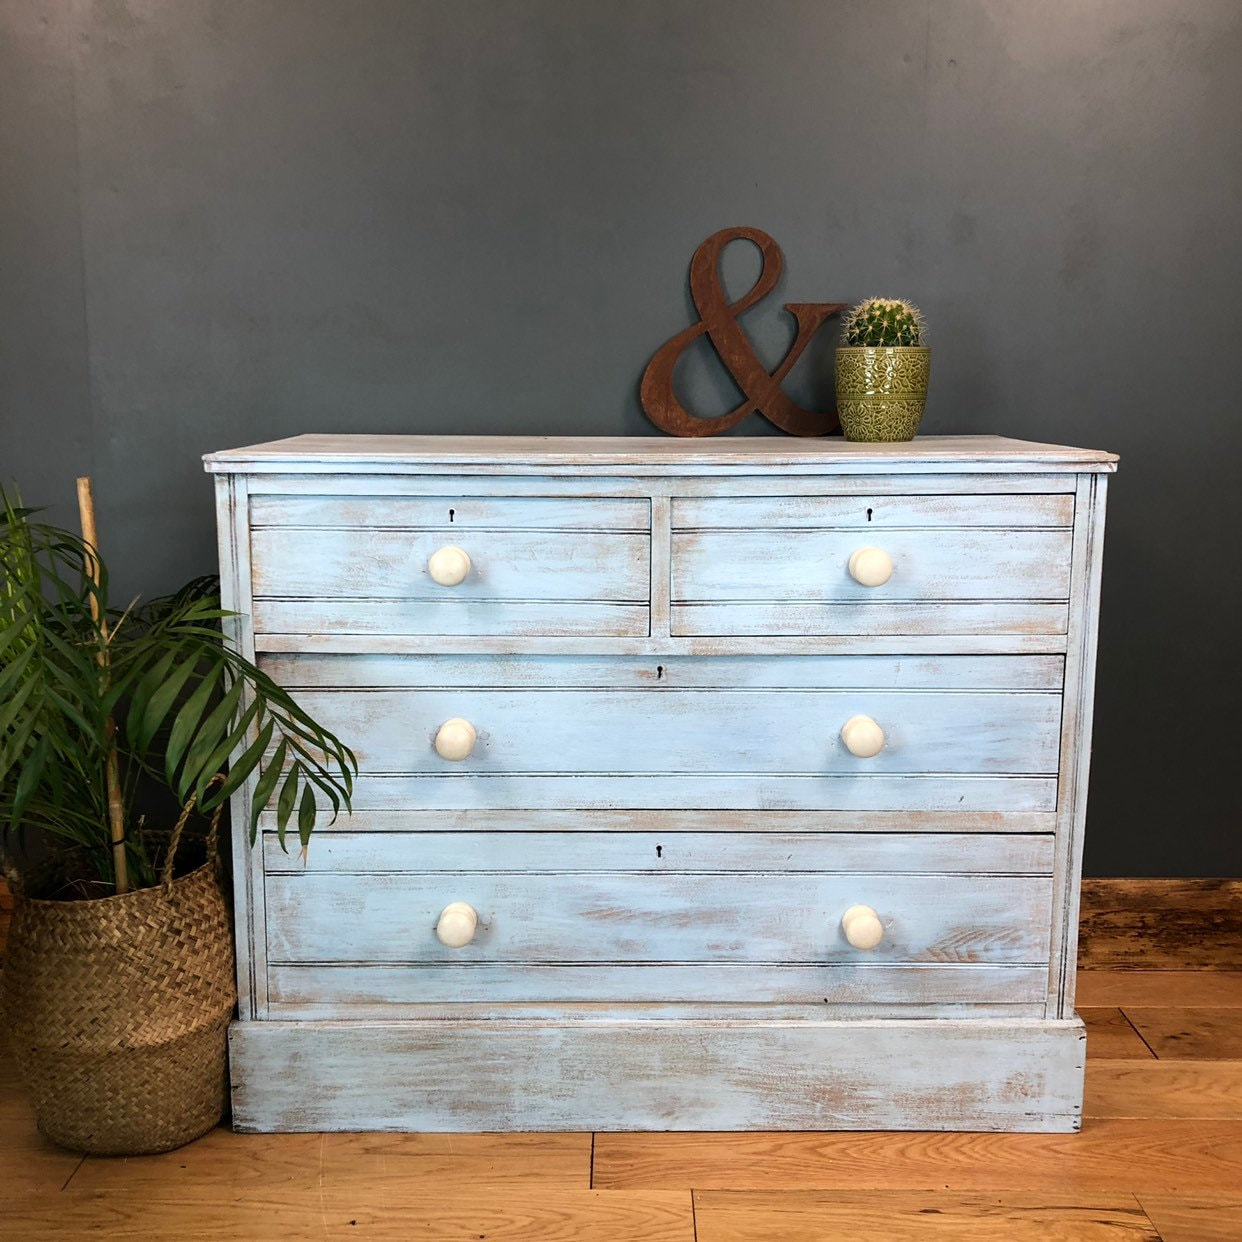 Vintage Pine Chest Of Drawers Unit Upcycled Sideboard Painted Shabby Chic